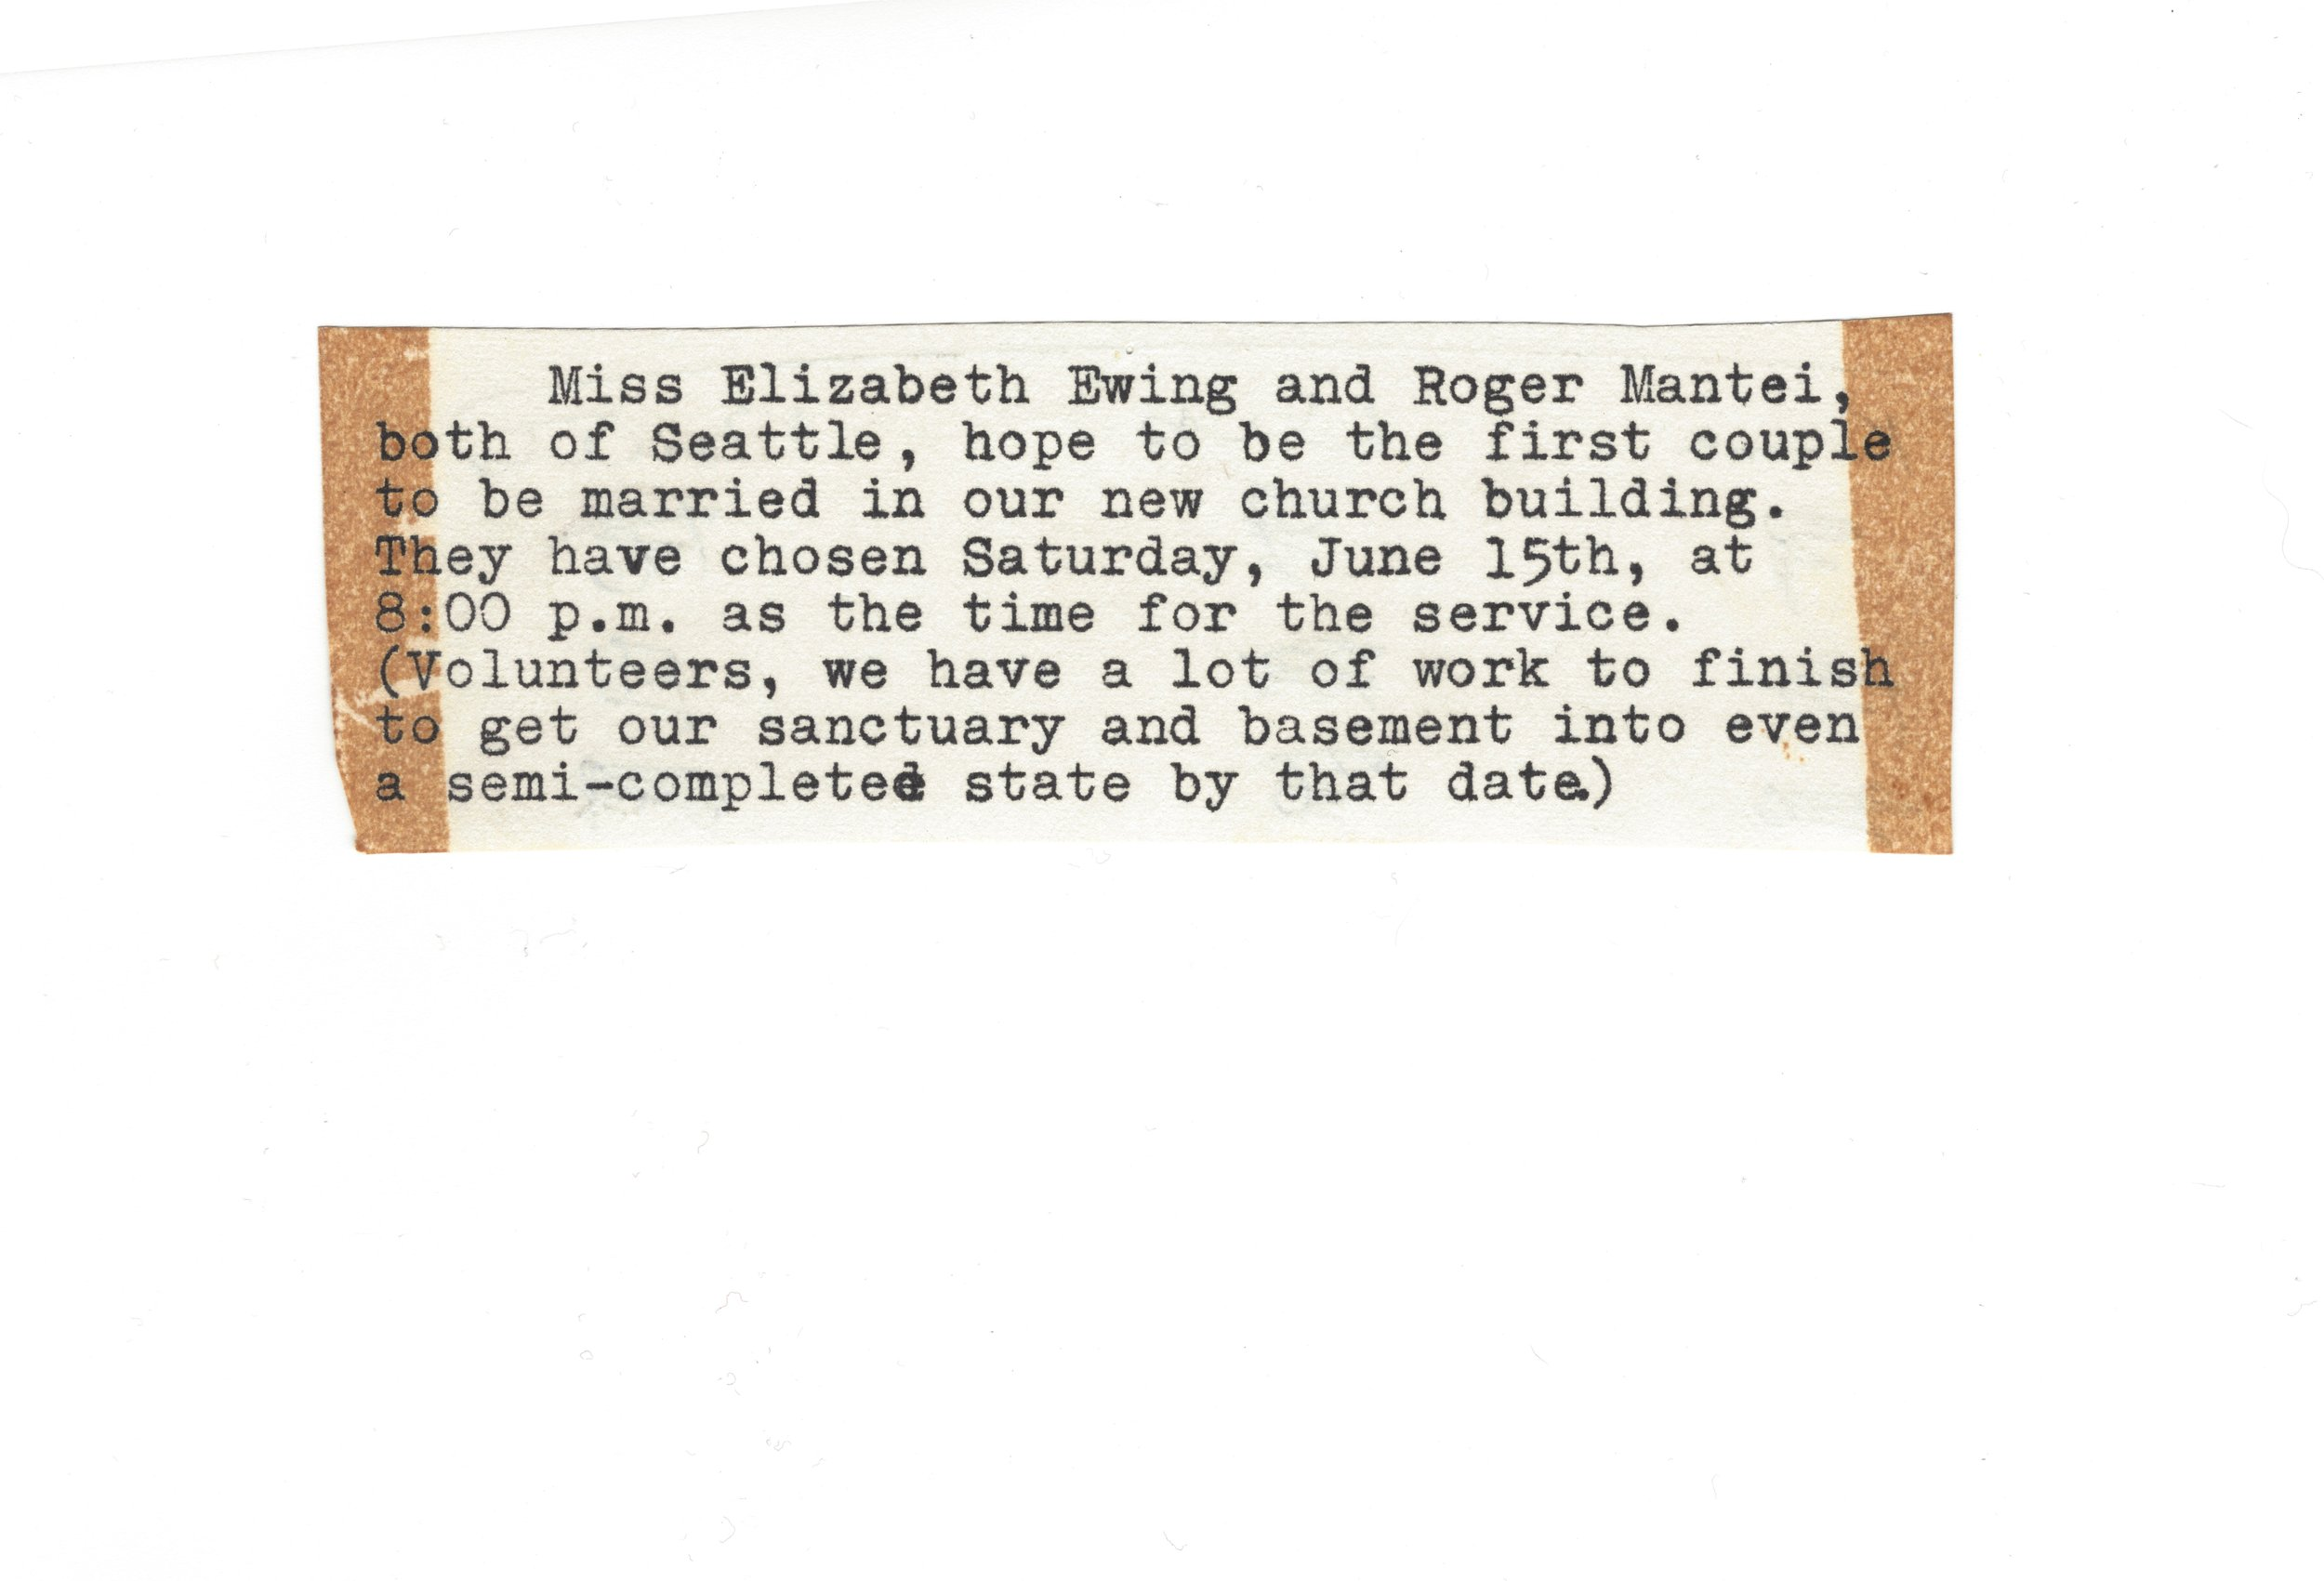 If possible, it would be nice to remove the discoloration due to the tape marks on the edge of the paper. I will be using this in a display with other items saved from 1968. This was the announcement in the church bulletin, and they are very proud to have been the first couple married in our church.